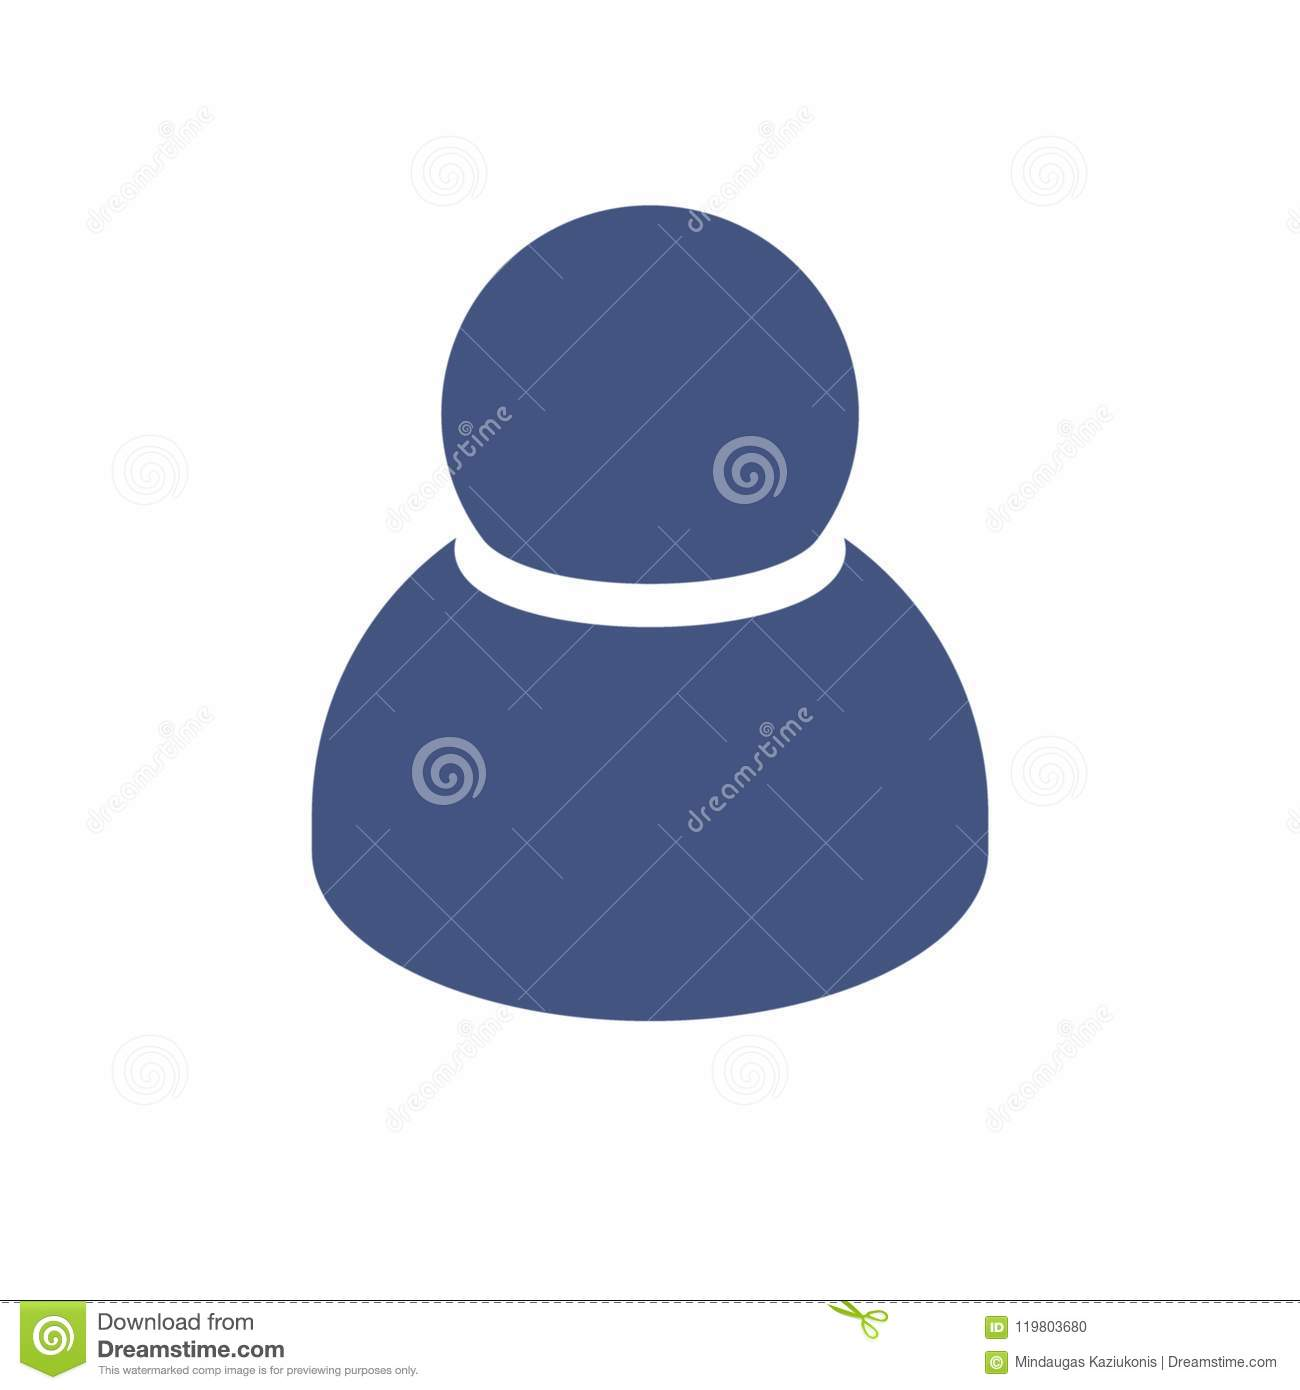 One Human Person Man Blue Icon White Background Stock Illustration Illustration Of Concept Avatar 119803680 Download this free icon about human eye shape, and discover more than 10 million professional graphic resources on freepik. https www dreamstime com one human person man blue icon white background image119803680